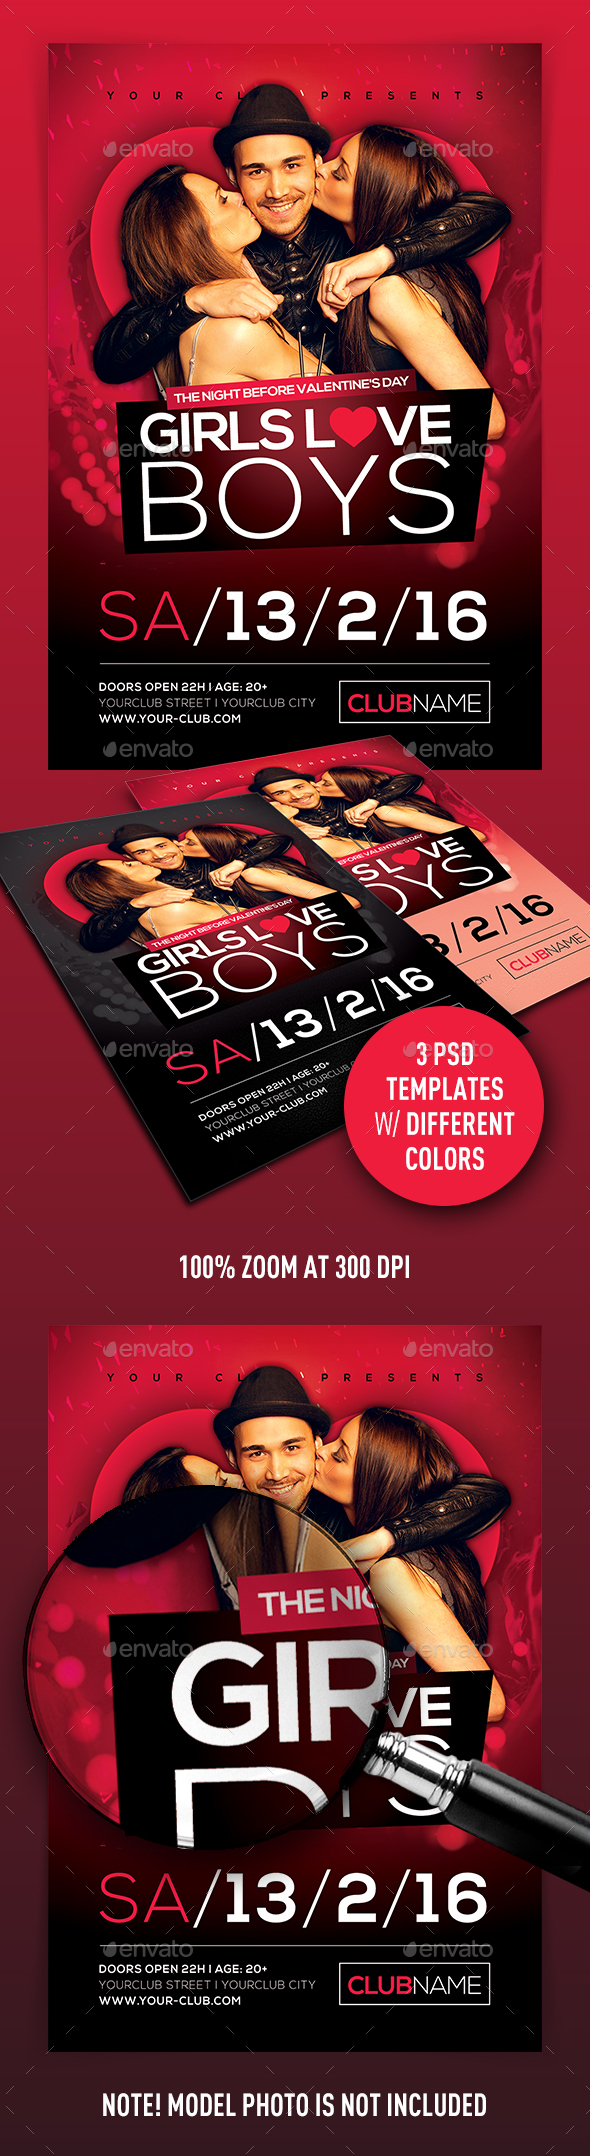 Girls Love Boys Flyer - Clubs & Parties Events